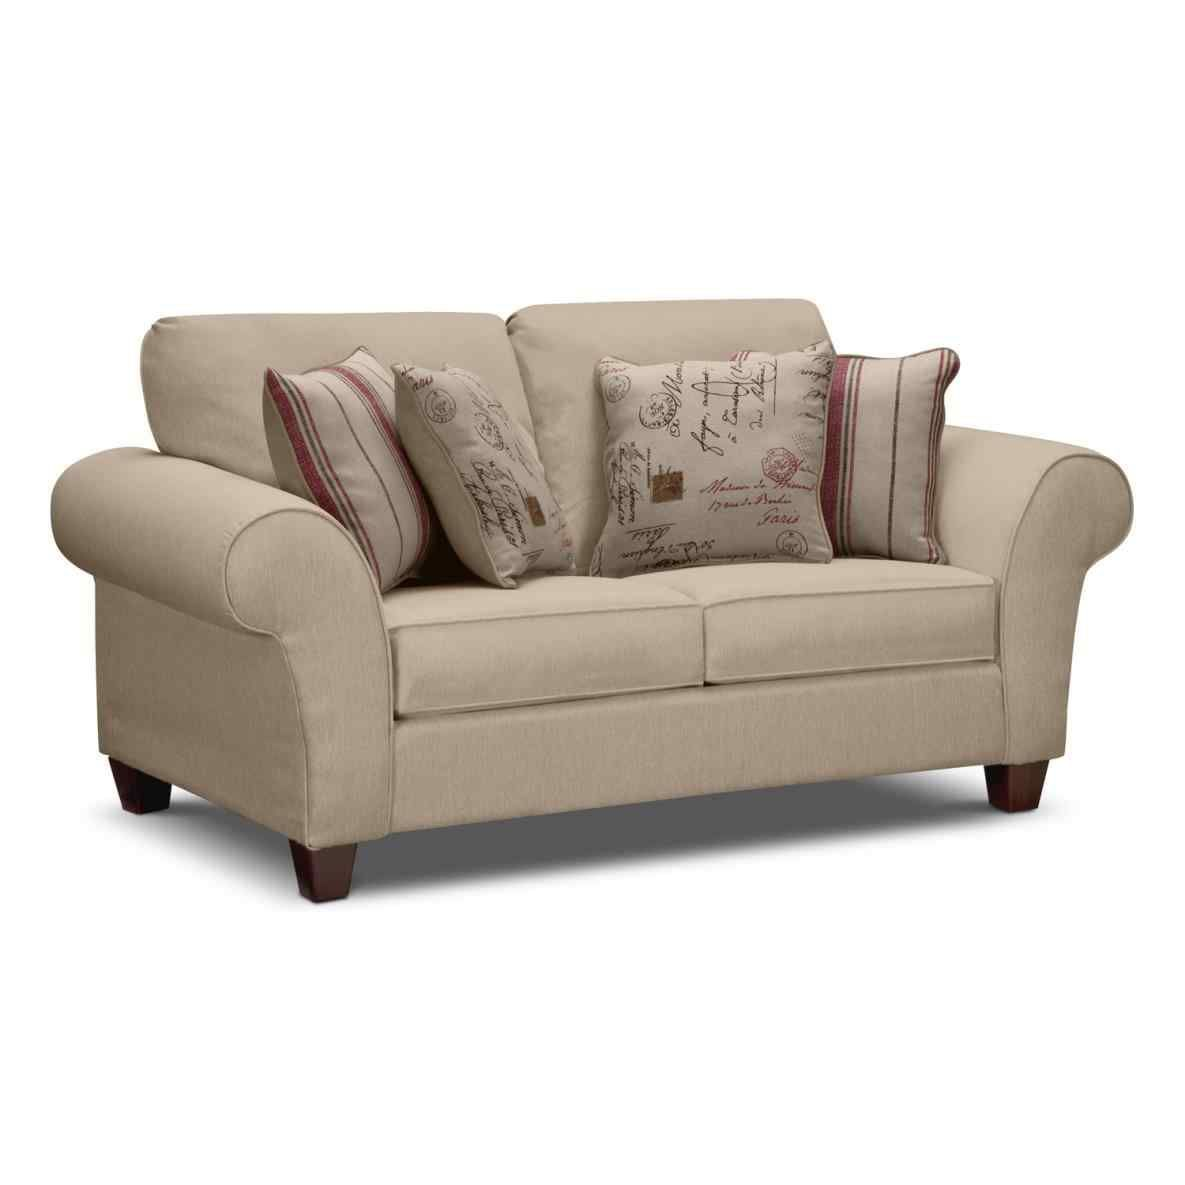 Marvelous Sofa With Blow Up Mattress Of Air Catchy Living Room Queen Evergreenethics Interior Chair Design Evergreenethicsorg